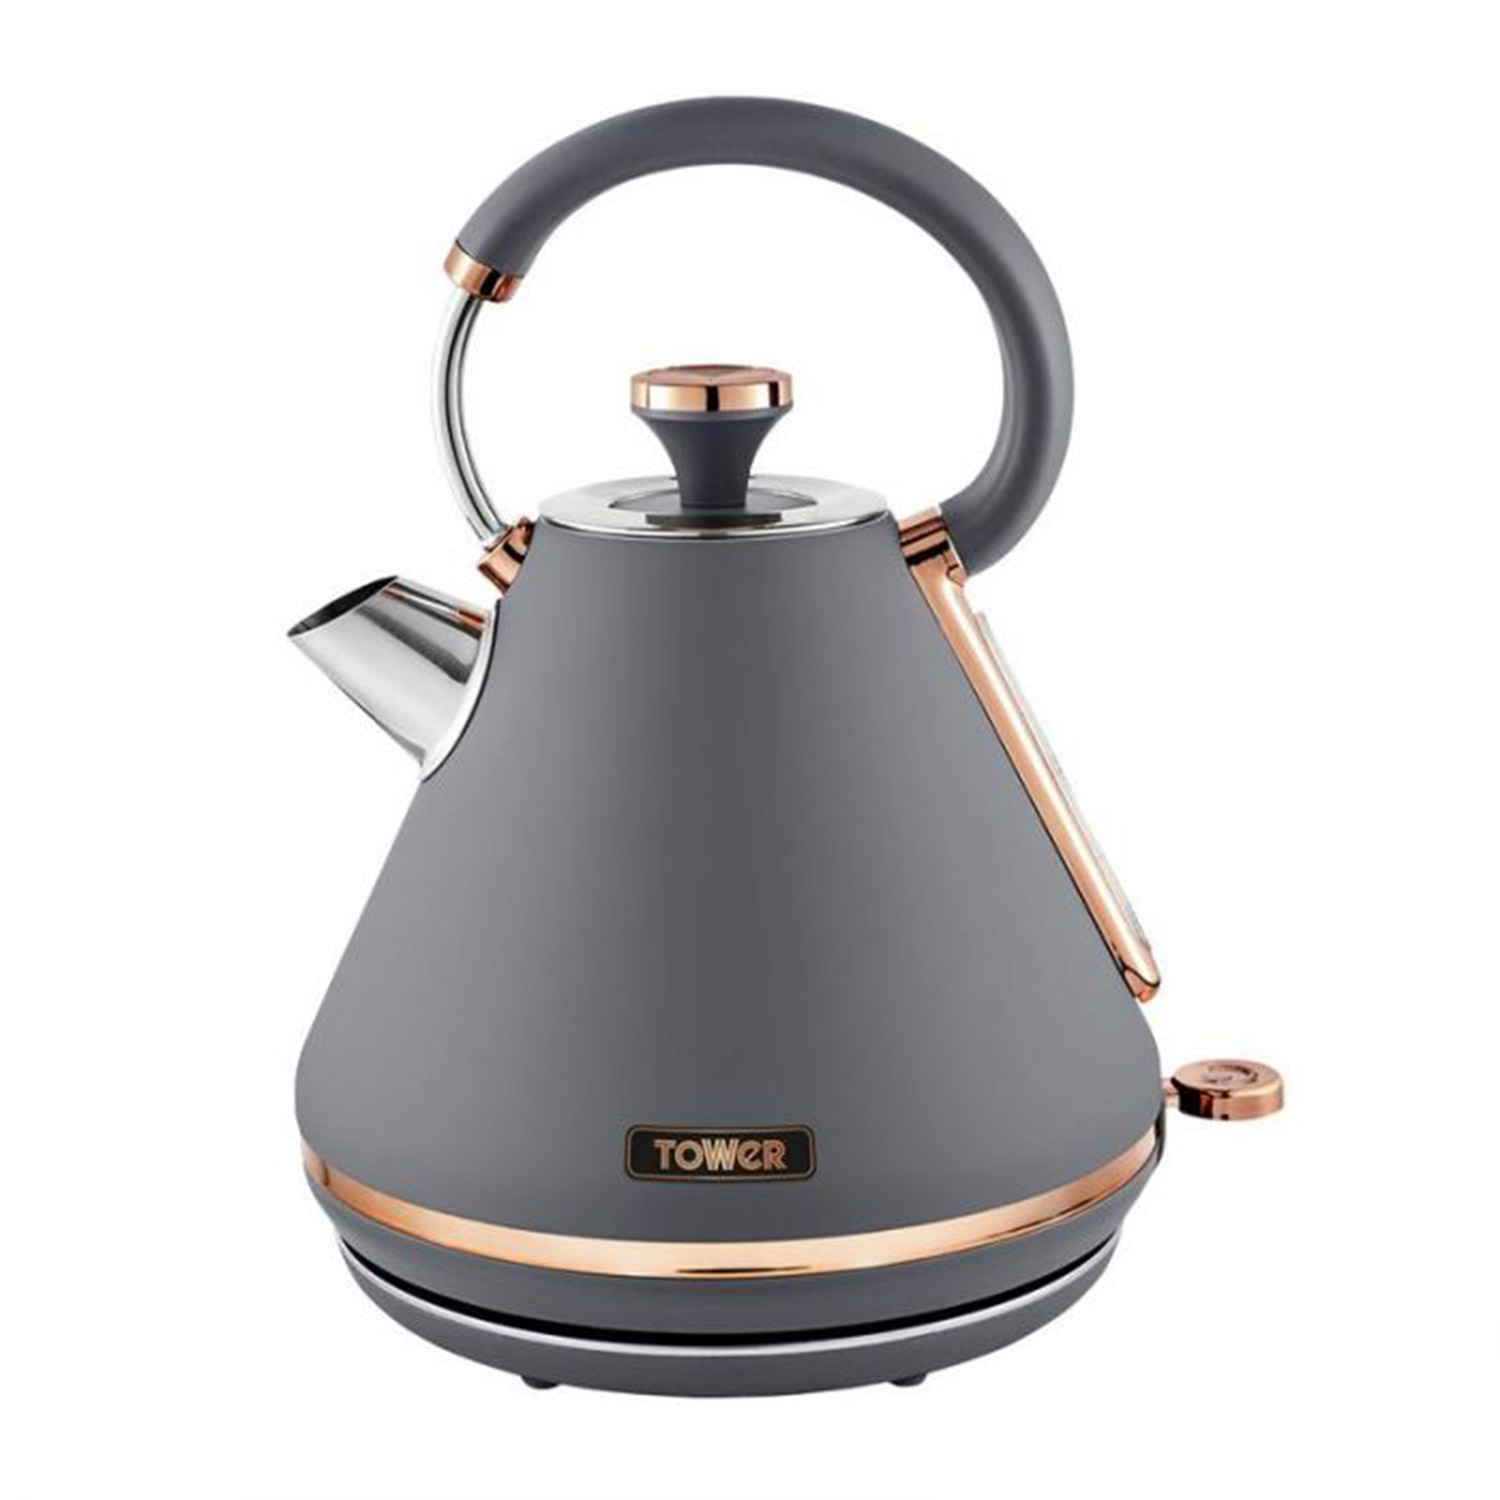 Tower Cavaletto Grey 1.7L 3KW Kettle